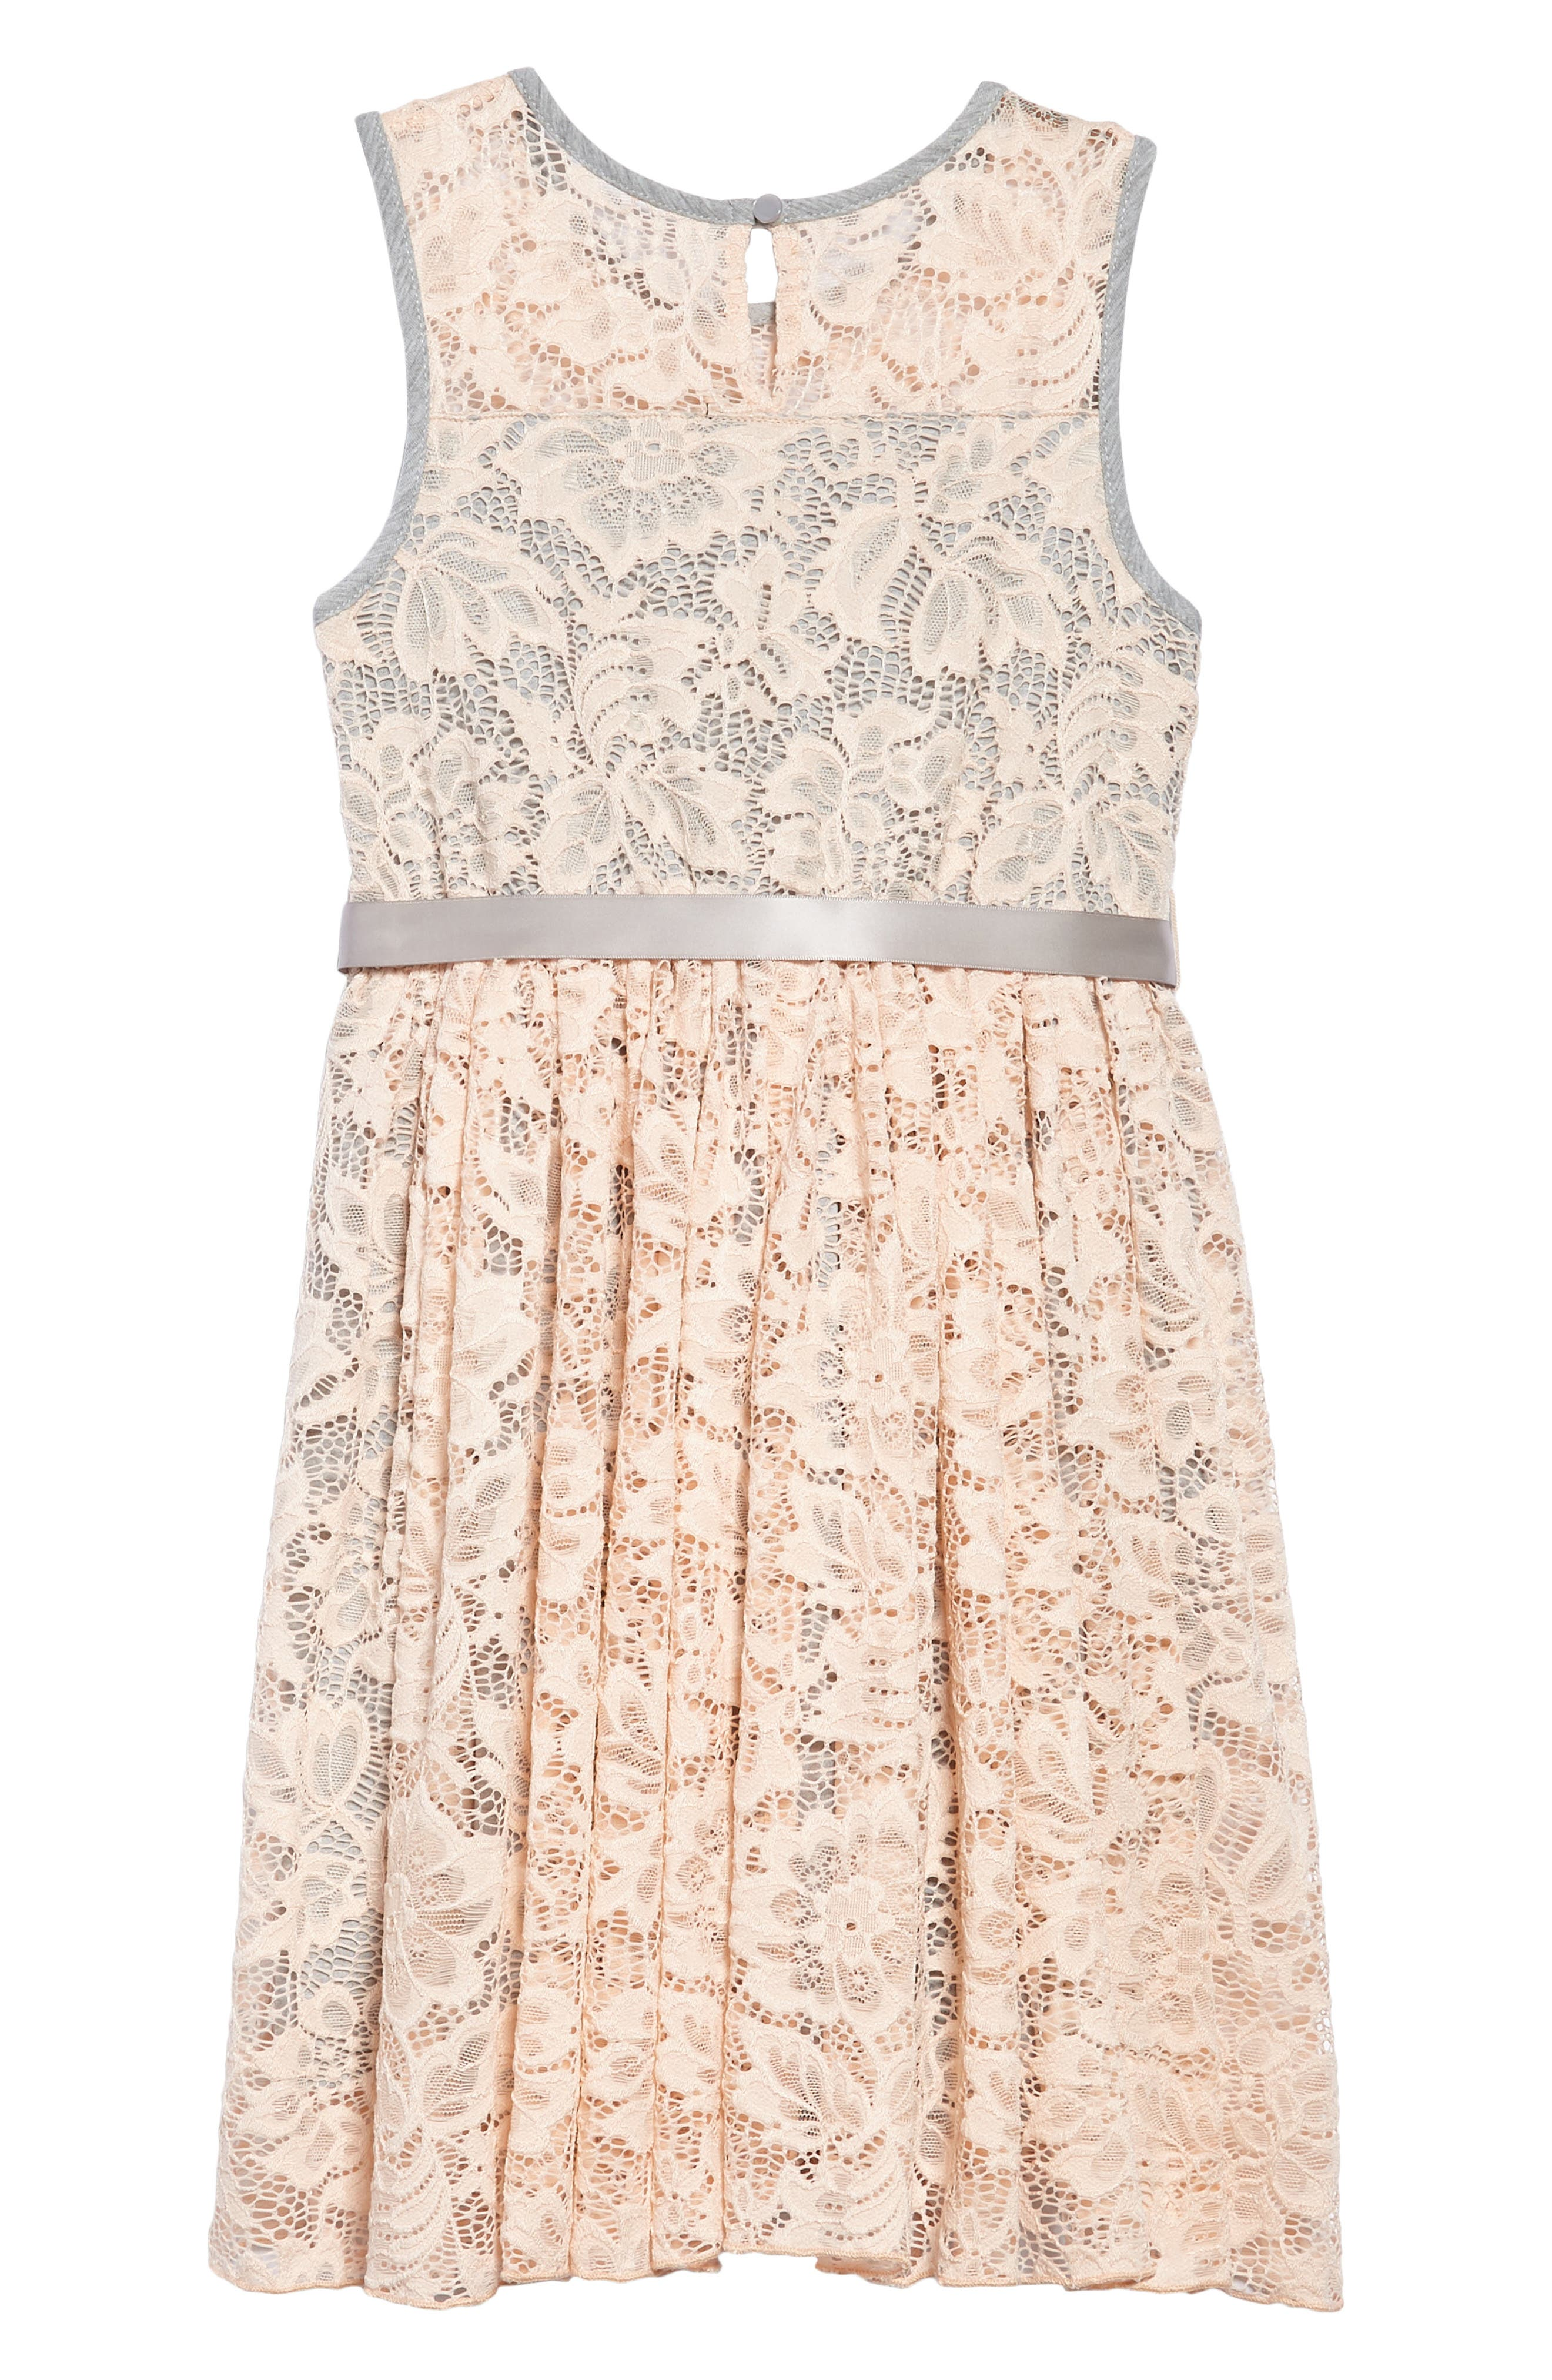 Sleeveless Floral Lace Dress,                             Alternate thumbnail 2, color,                             685